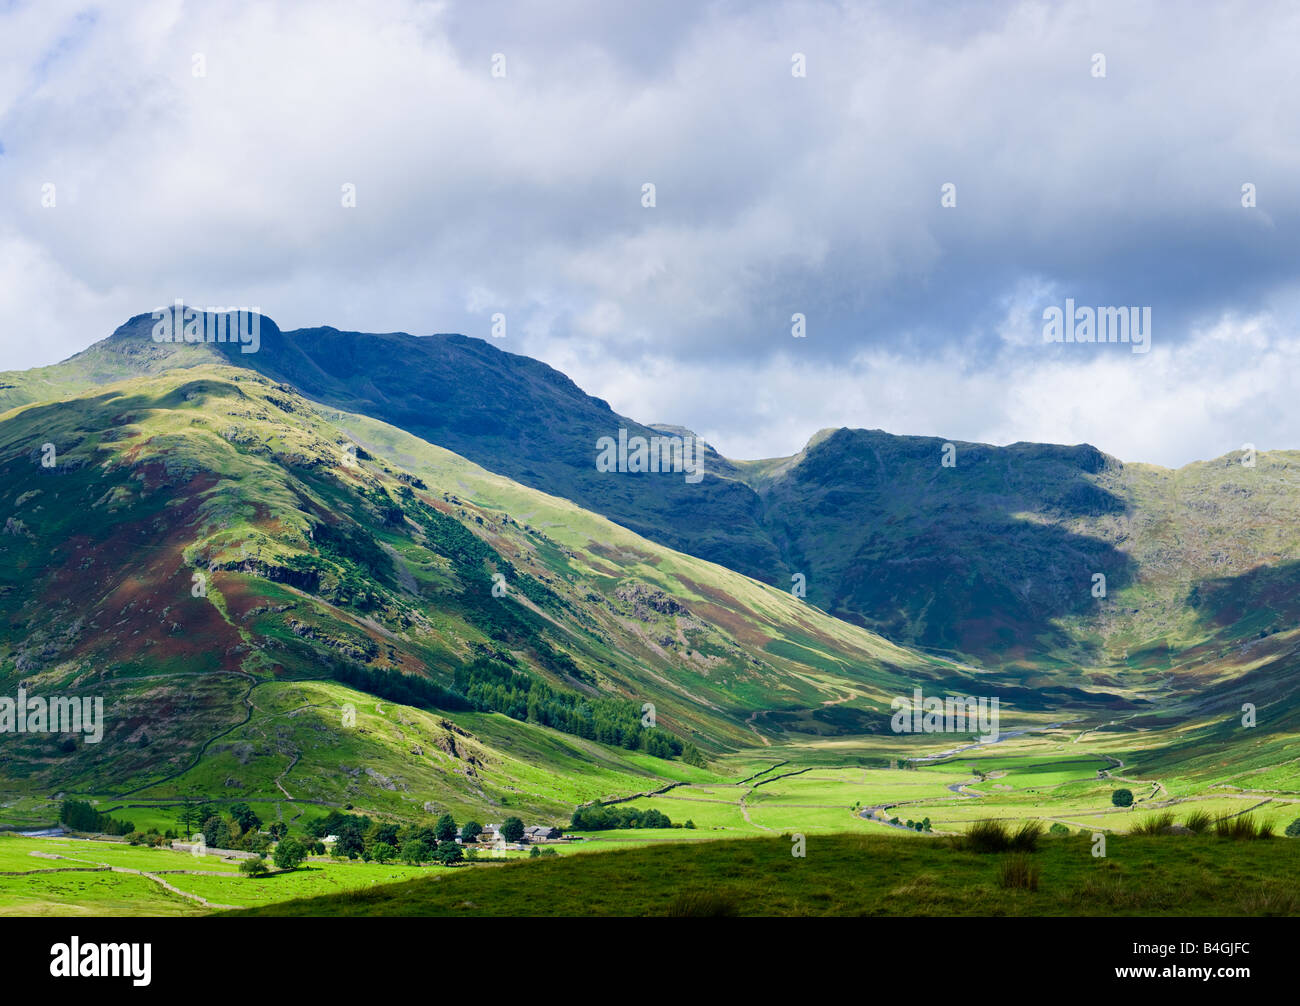 The Band and Bowfell in the English Lake District Cumbria England UK showing the Langdale Valley floor - Stock Image